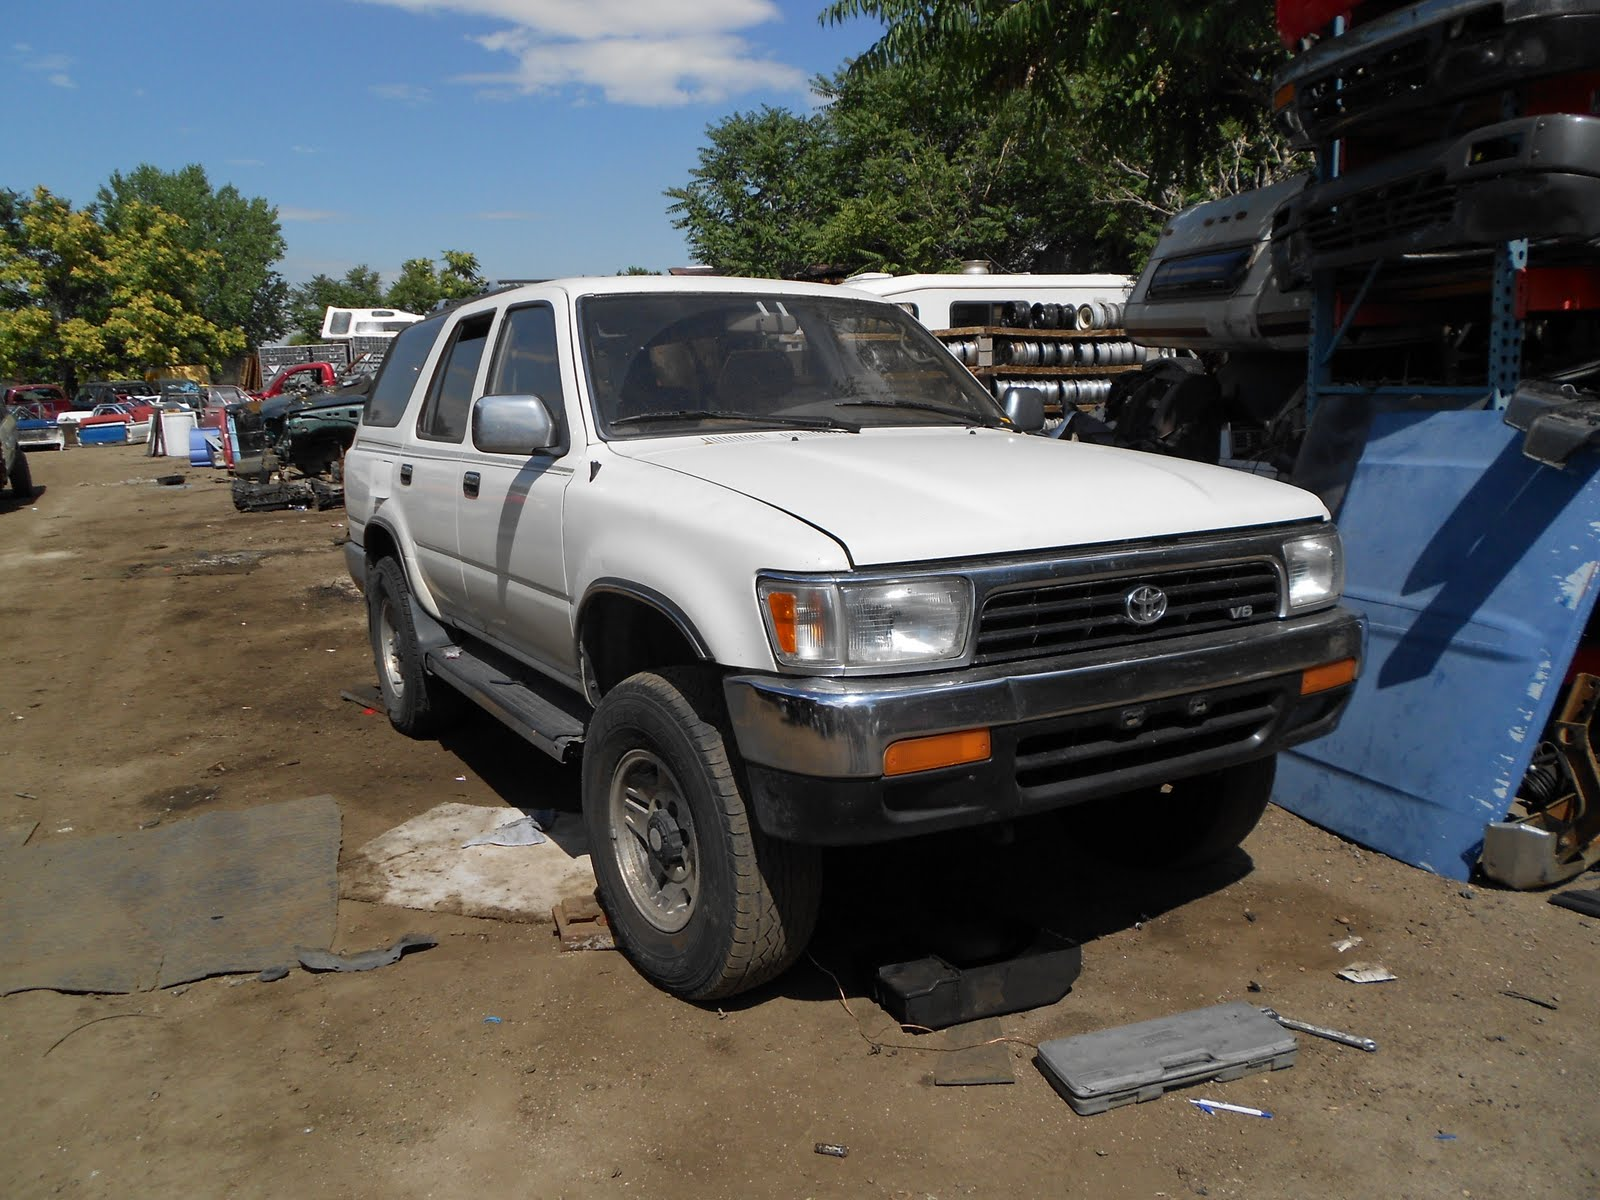 new arrivals at jim 39 s used toyota truck parts 1982 4x4 toyota pickup. Black Bedroom Furniture Sets. Home Design Ideas